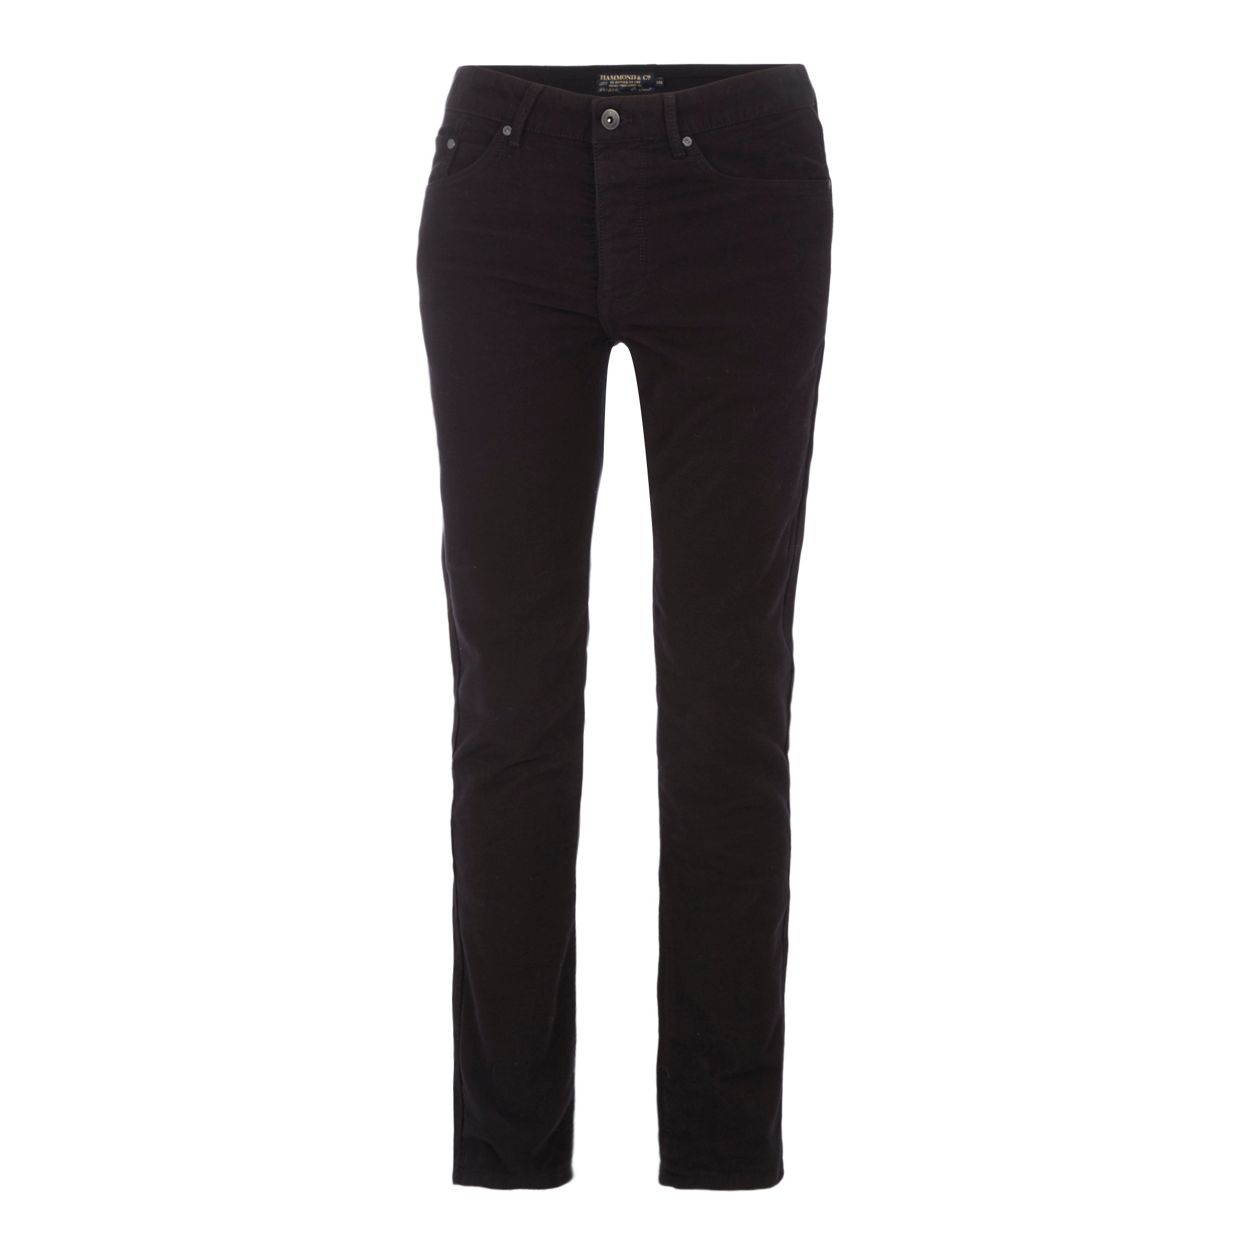 Hammond & Co. by Patrick Grant Black moleskin tailored fit trousers